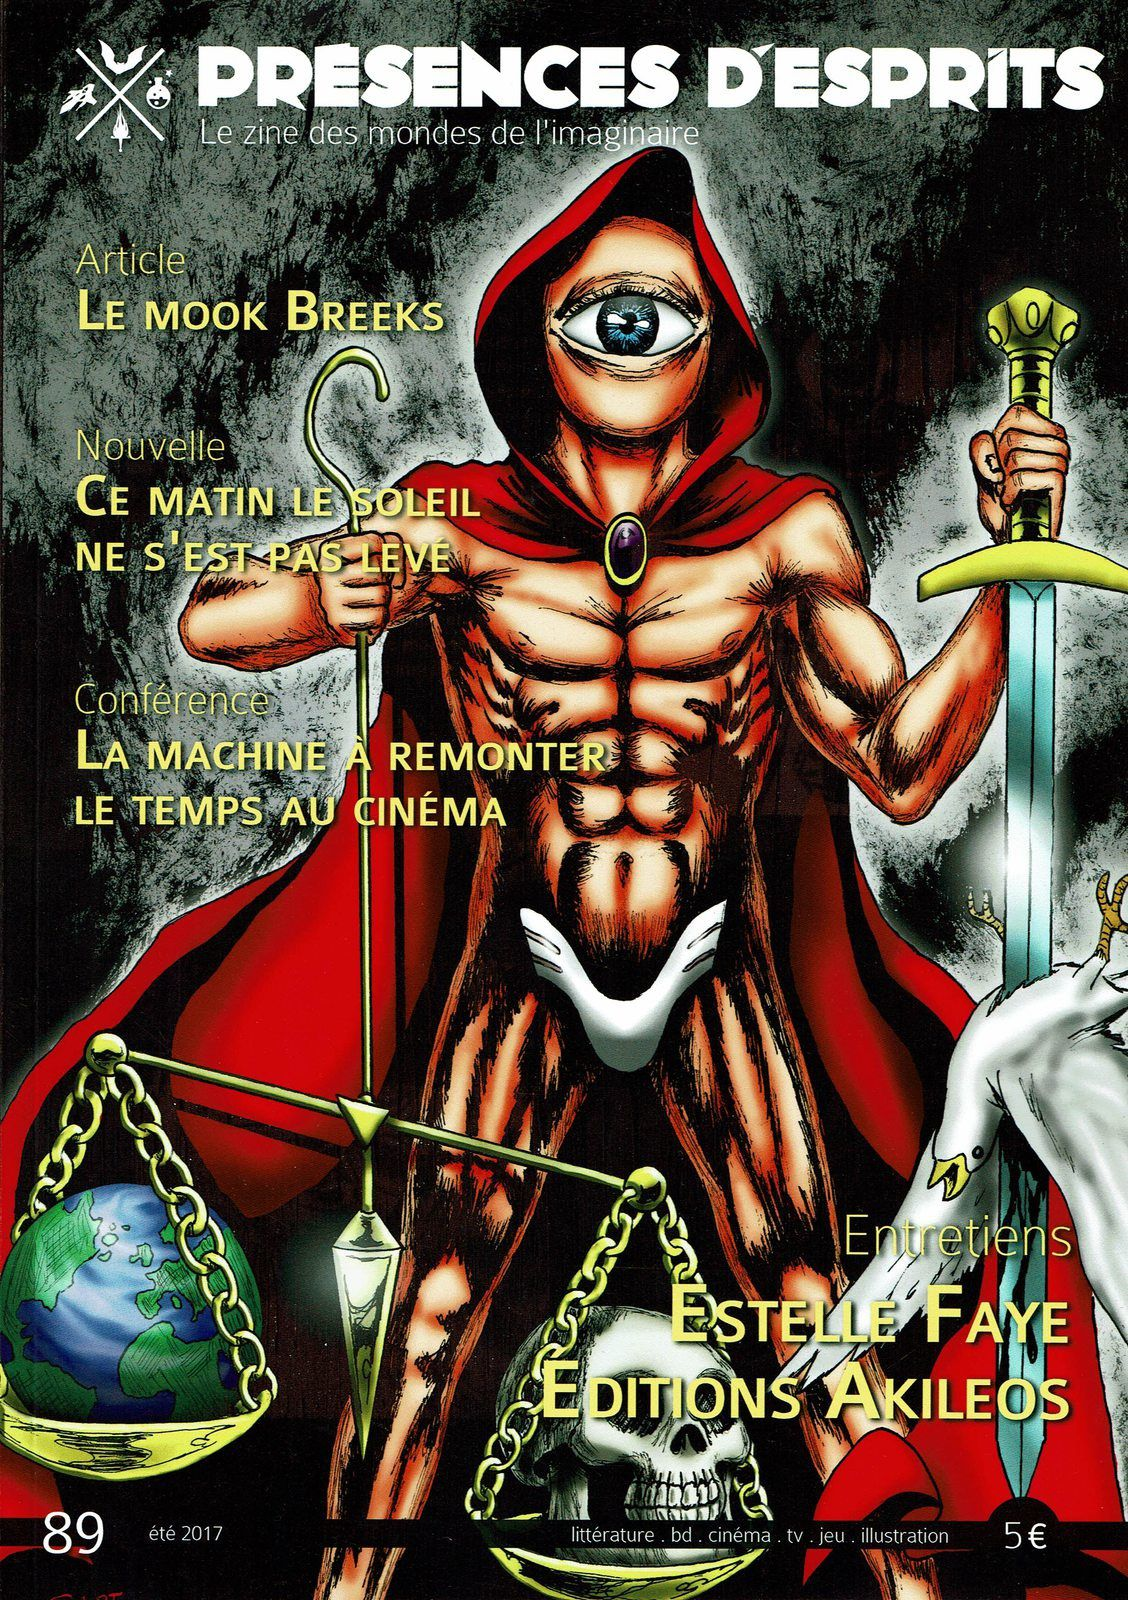 Couverture: AGILL